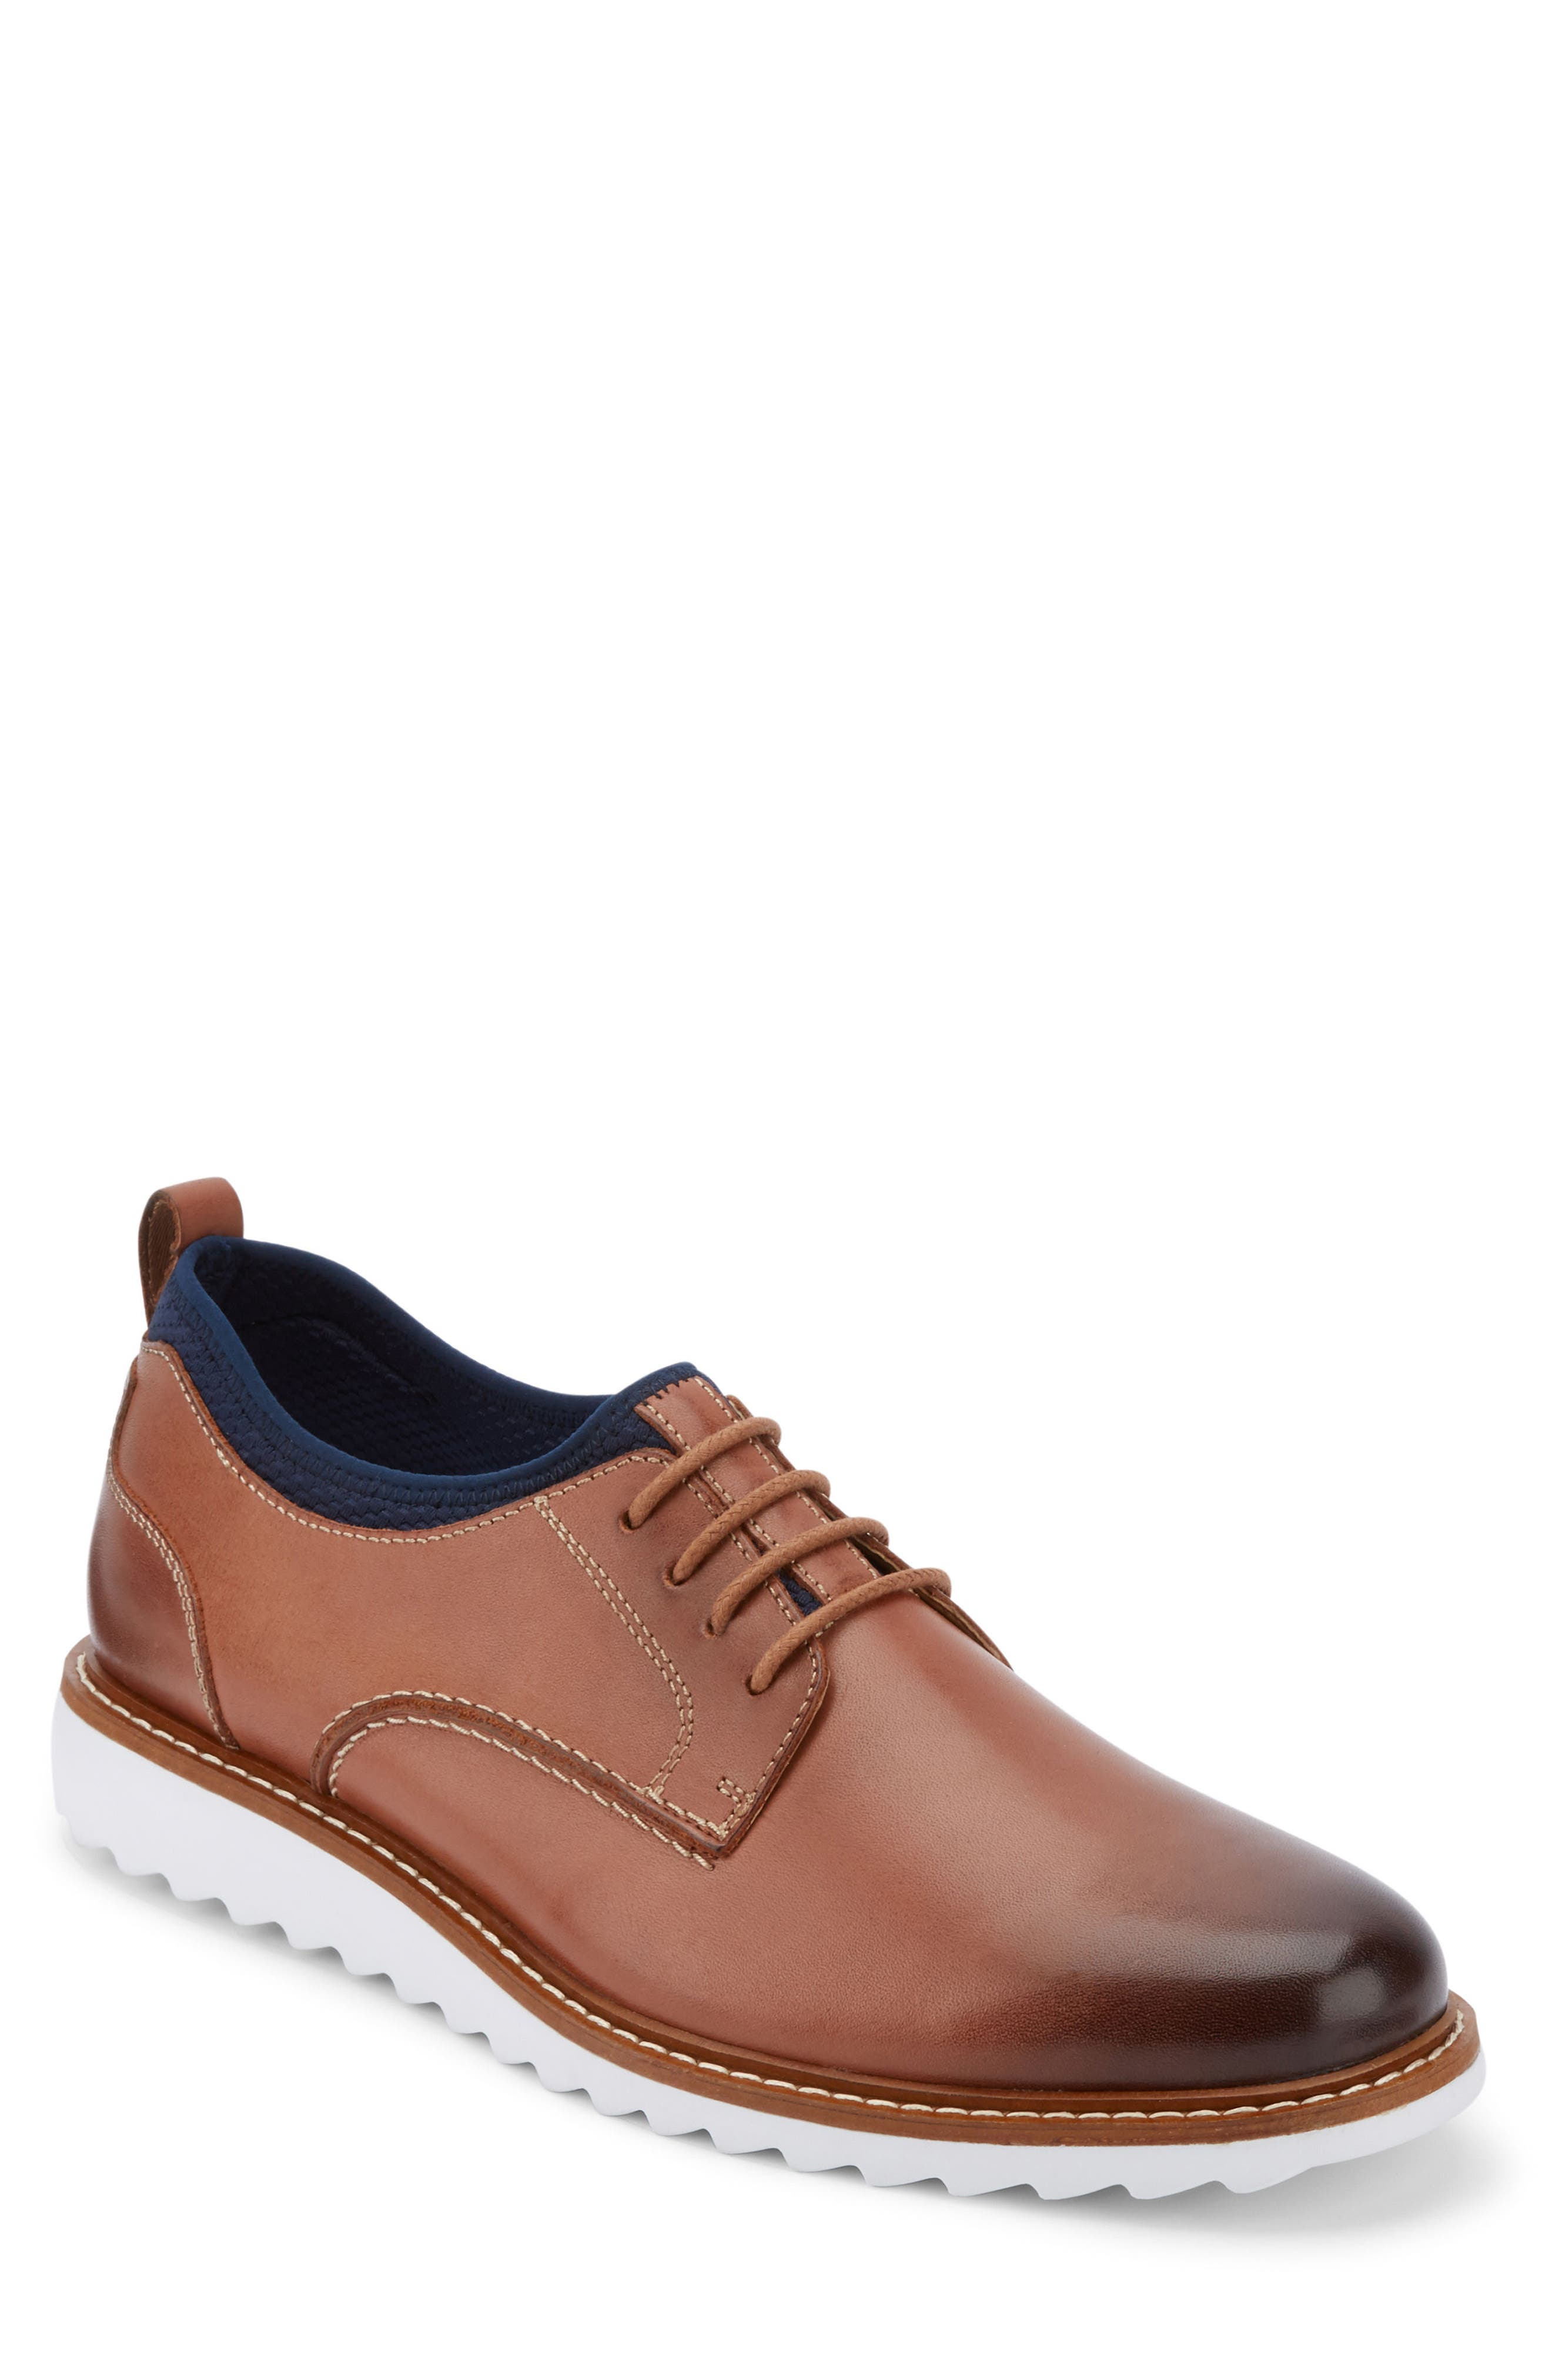 Buck 2.0 Plain Toe Derby,                         Main,                         color, Tan Burnished Leather